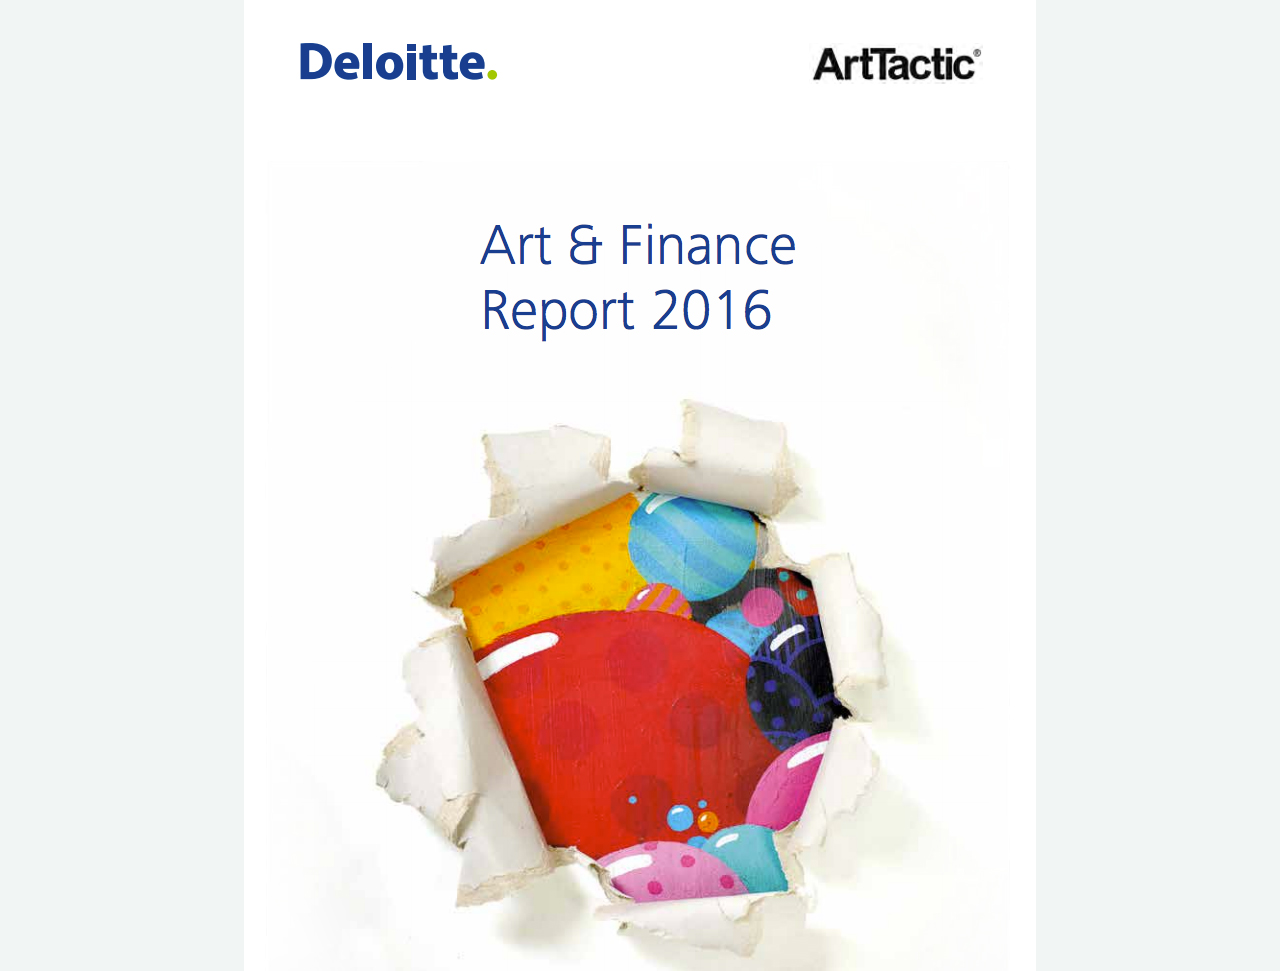 The cover of the Deloitte Art and Finance Report, 2016